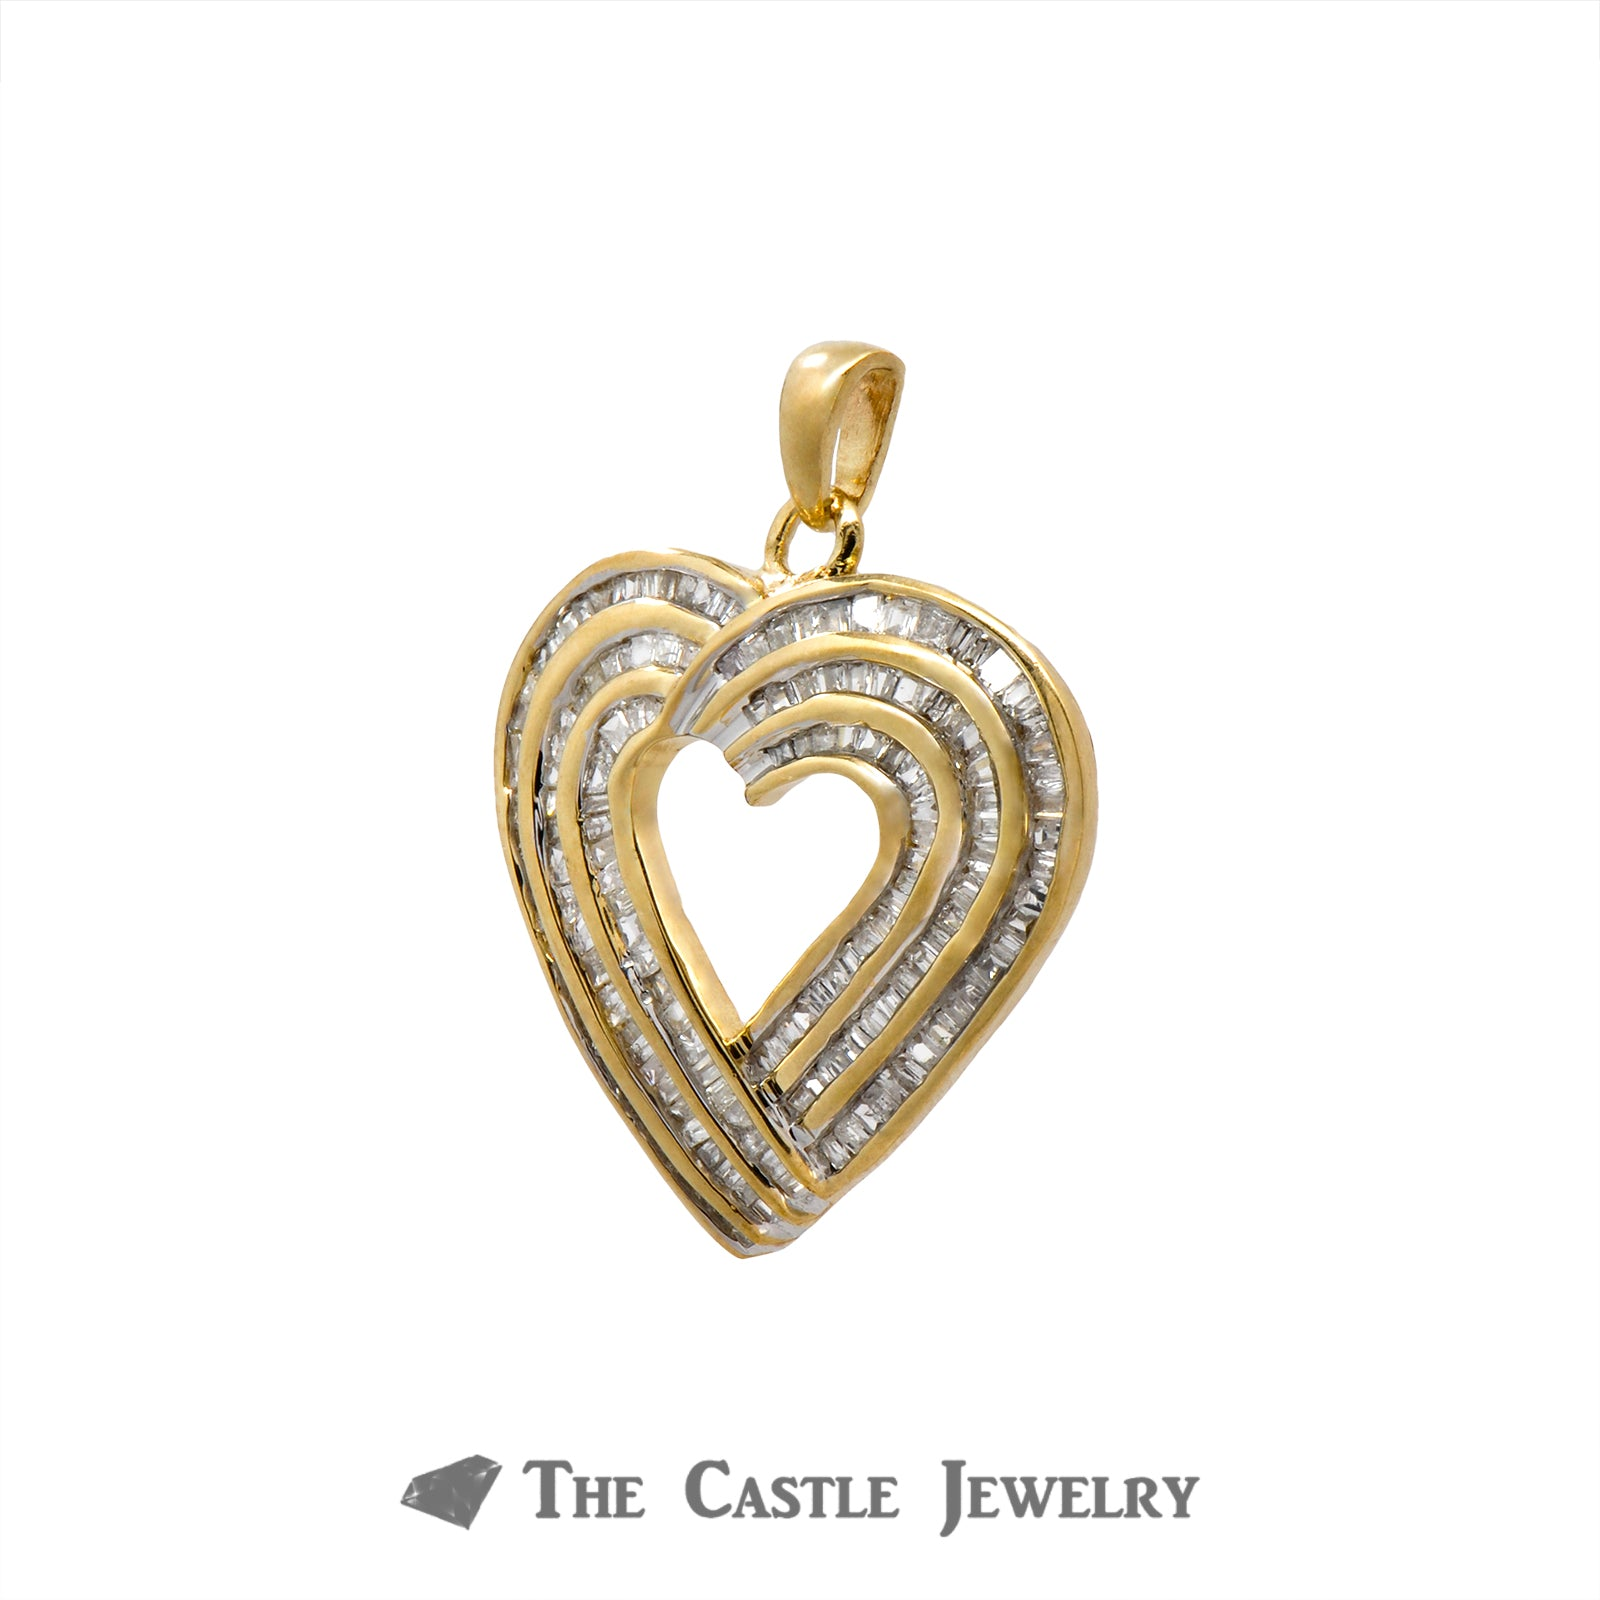 Heart Pendant with 3 Rows of 1cttw Channel Set Baguette Cut Diamonds in 10k Yellow Gold-1